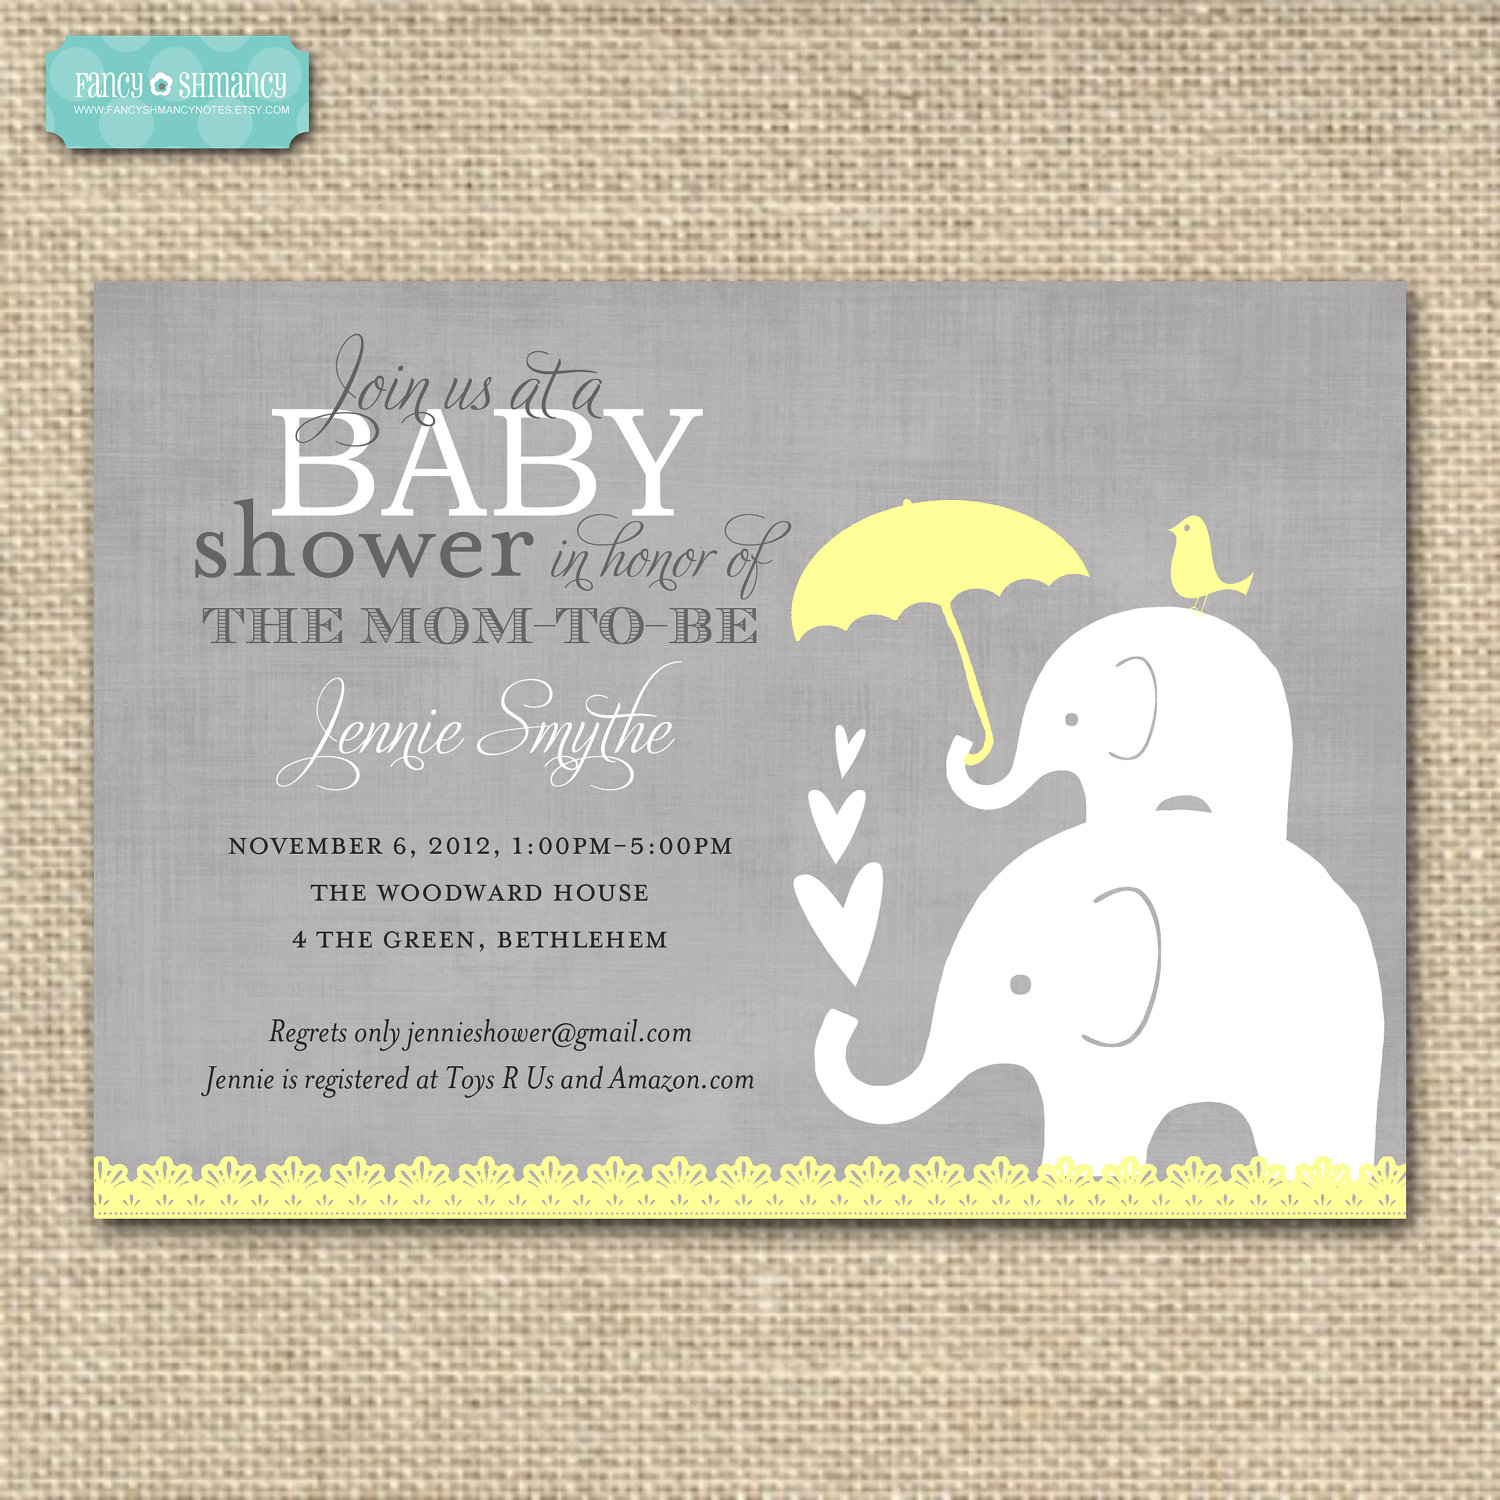 Full Size of Baby Shower:inspirational Elephant Baby Shower Invitations Photo Concepts Elephant Baby Shower Invitations And Homemade Baby Shower Gifts With Baby Shower Labels Plus Baby Shower Door Prizes Together With Baby Shower Tea As Well As Baby Shower Templates